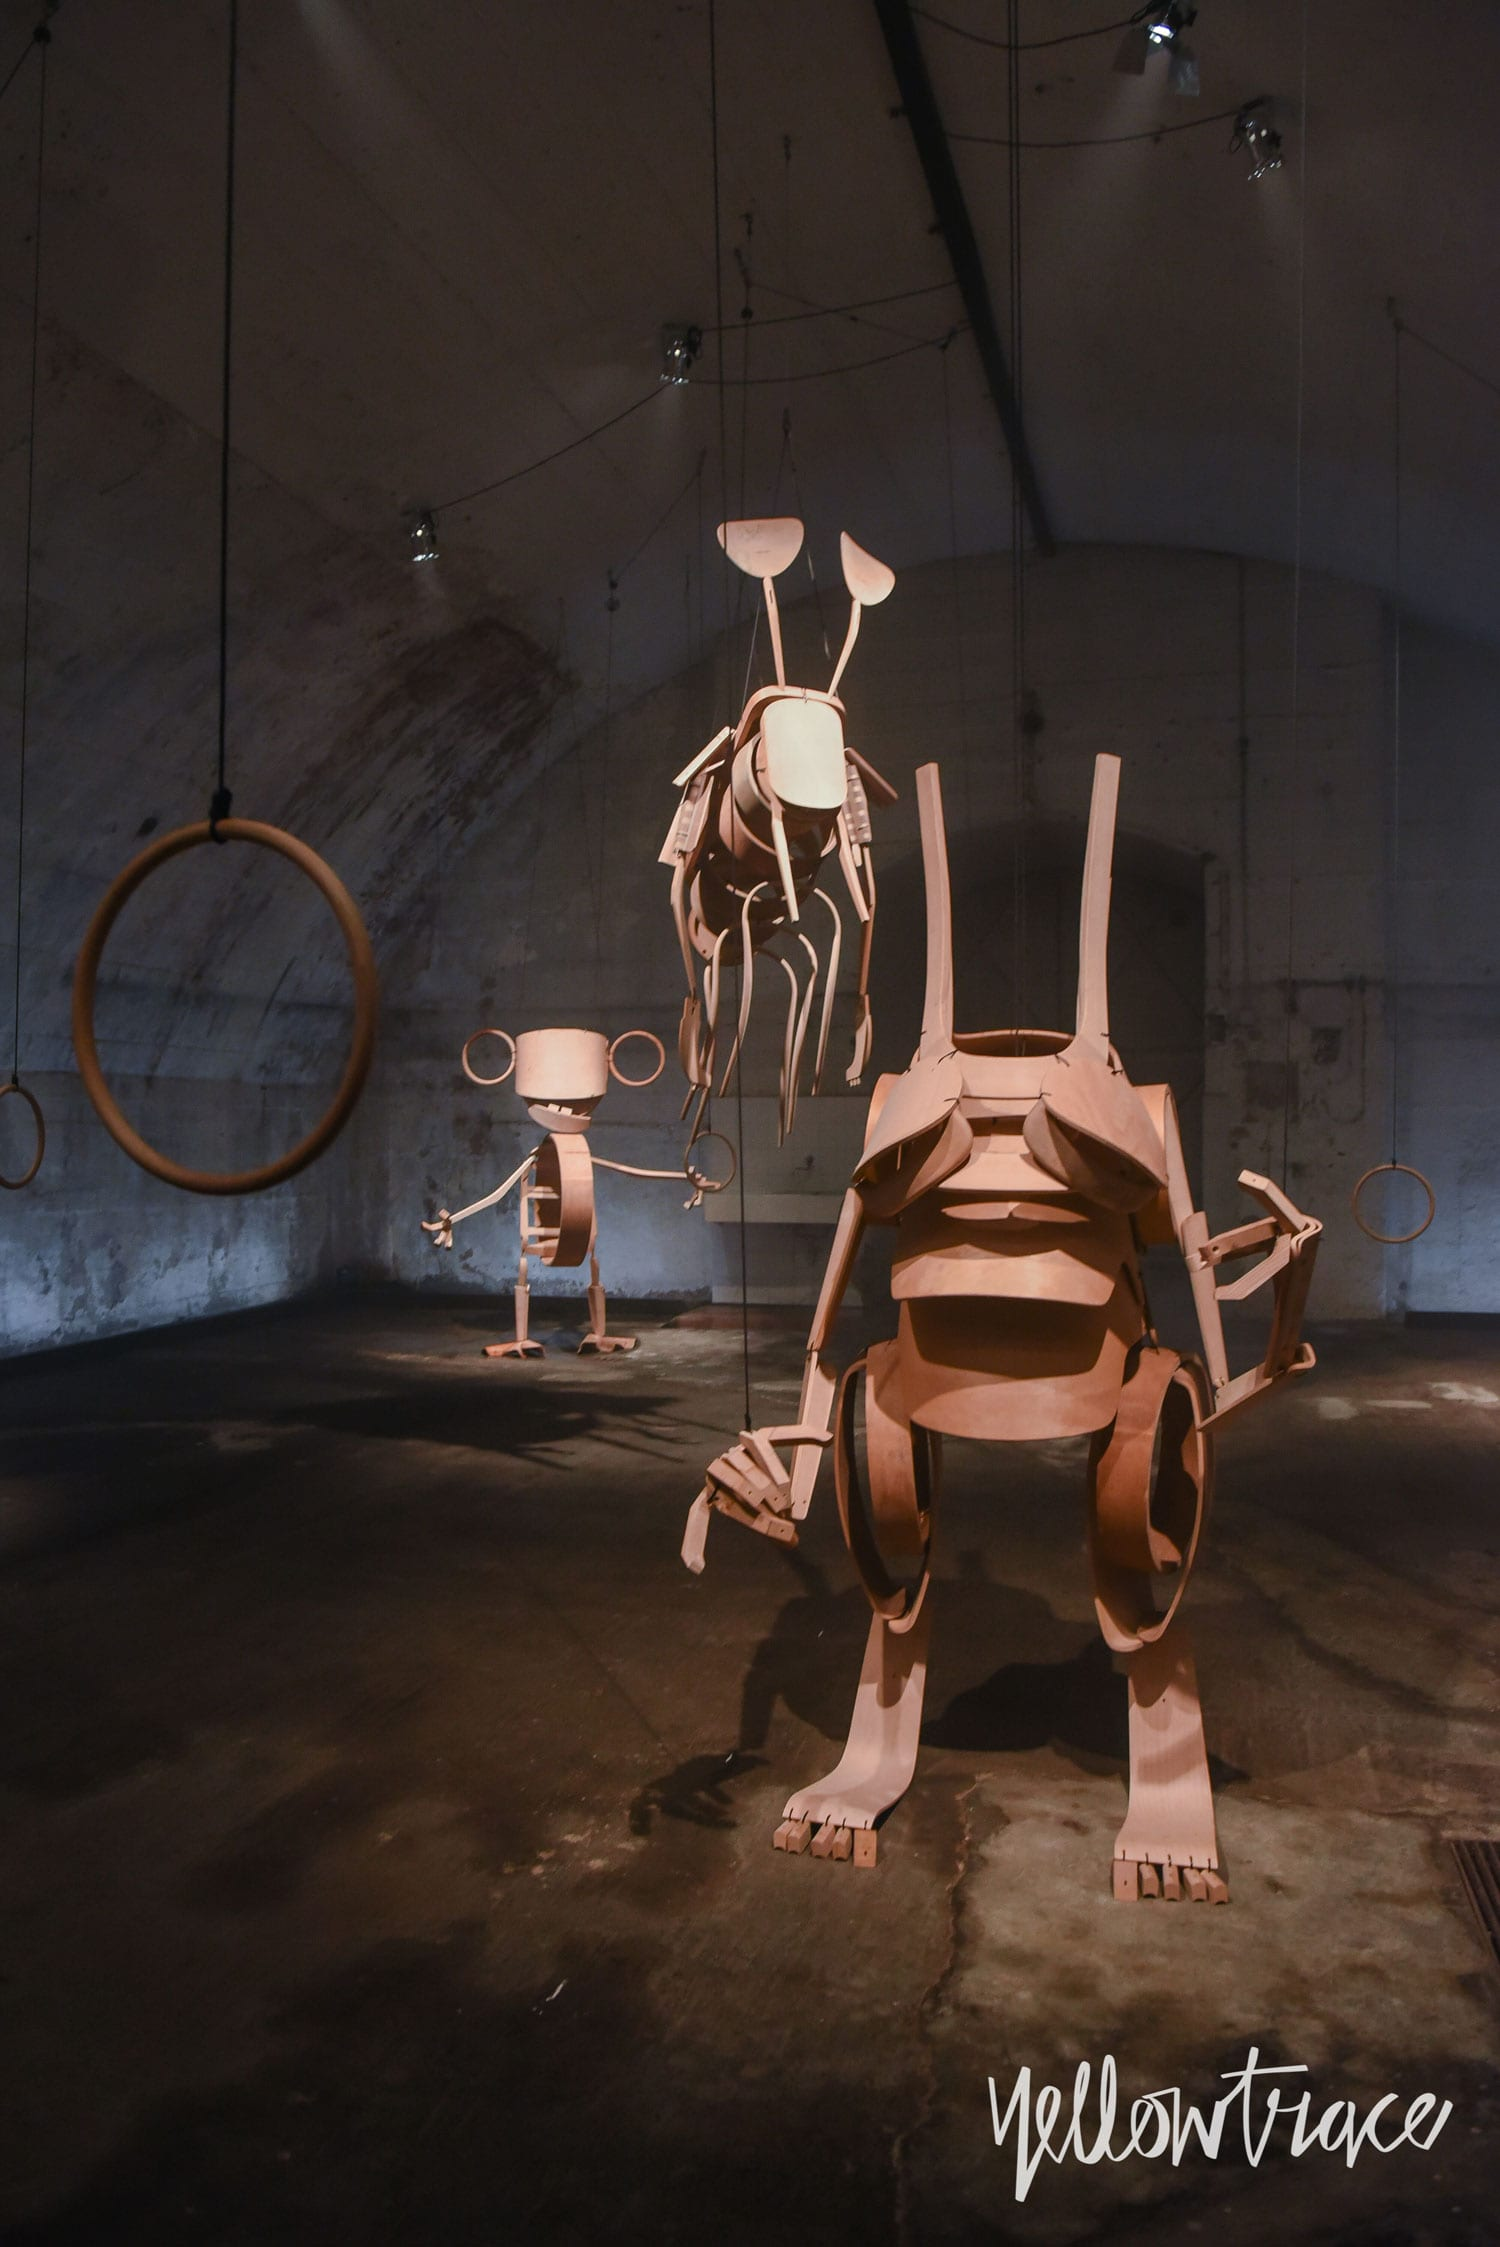 Giants with Dwarf by Stephan Hurlemann for horgenglarus at Milan Design Week 2018 | Yellowtrace